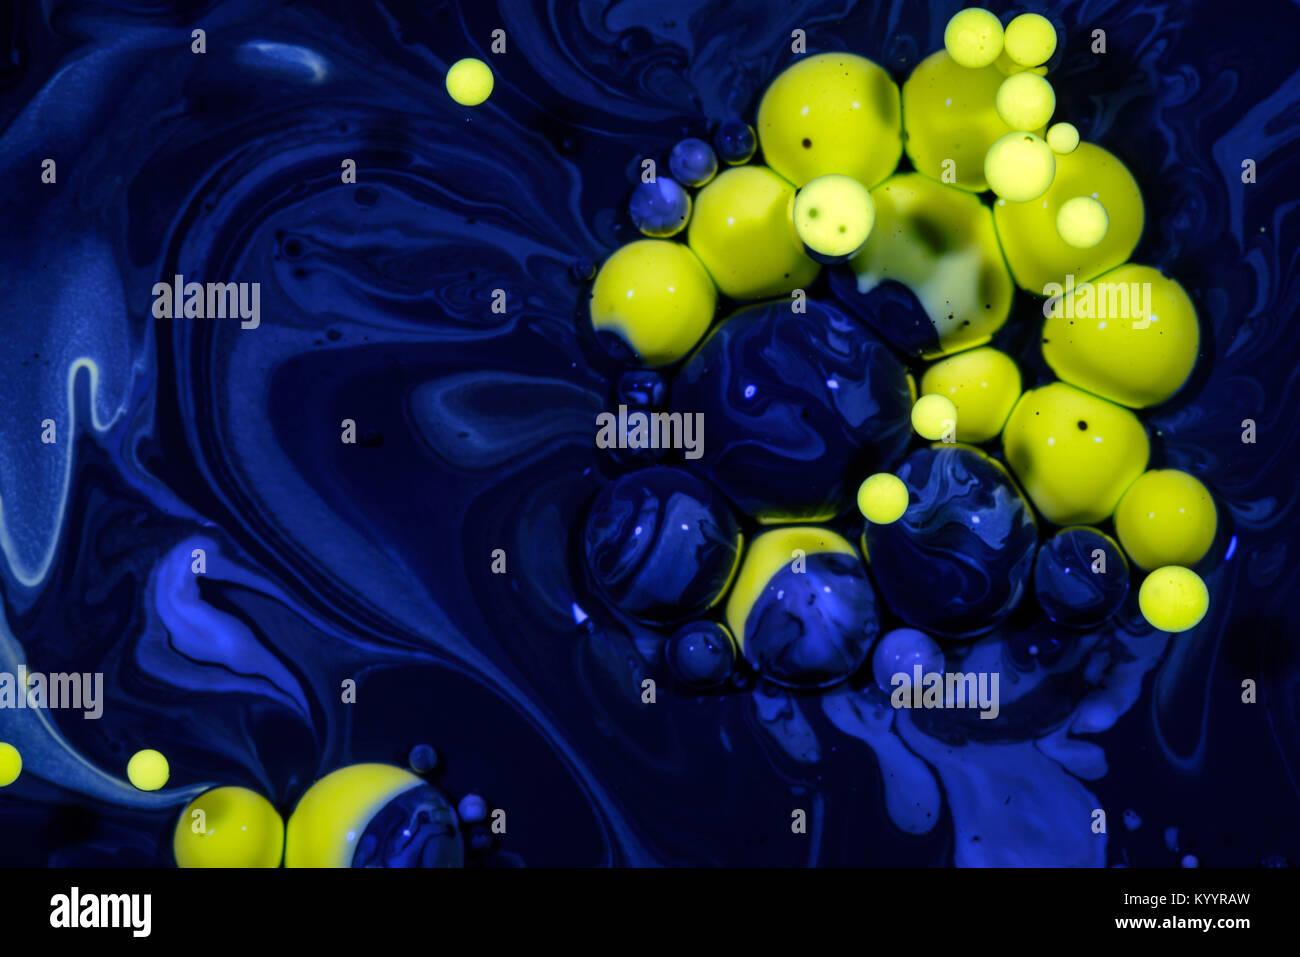 Yellow drops of oil suspended in blue chemical oil slick creating an abstract between nature and a polluted hazardous Stock Photo